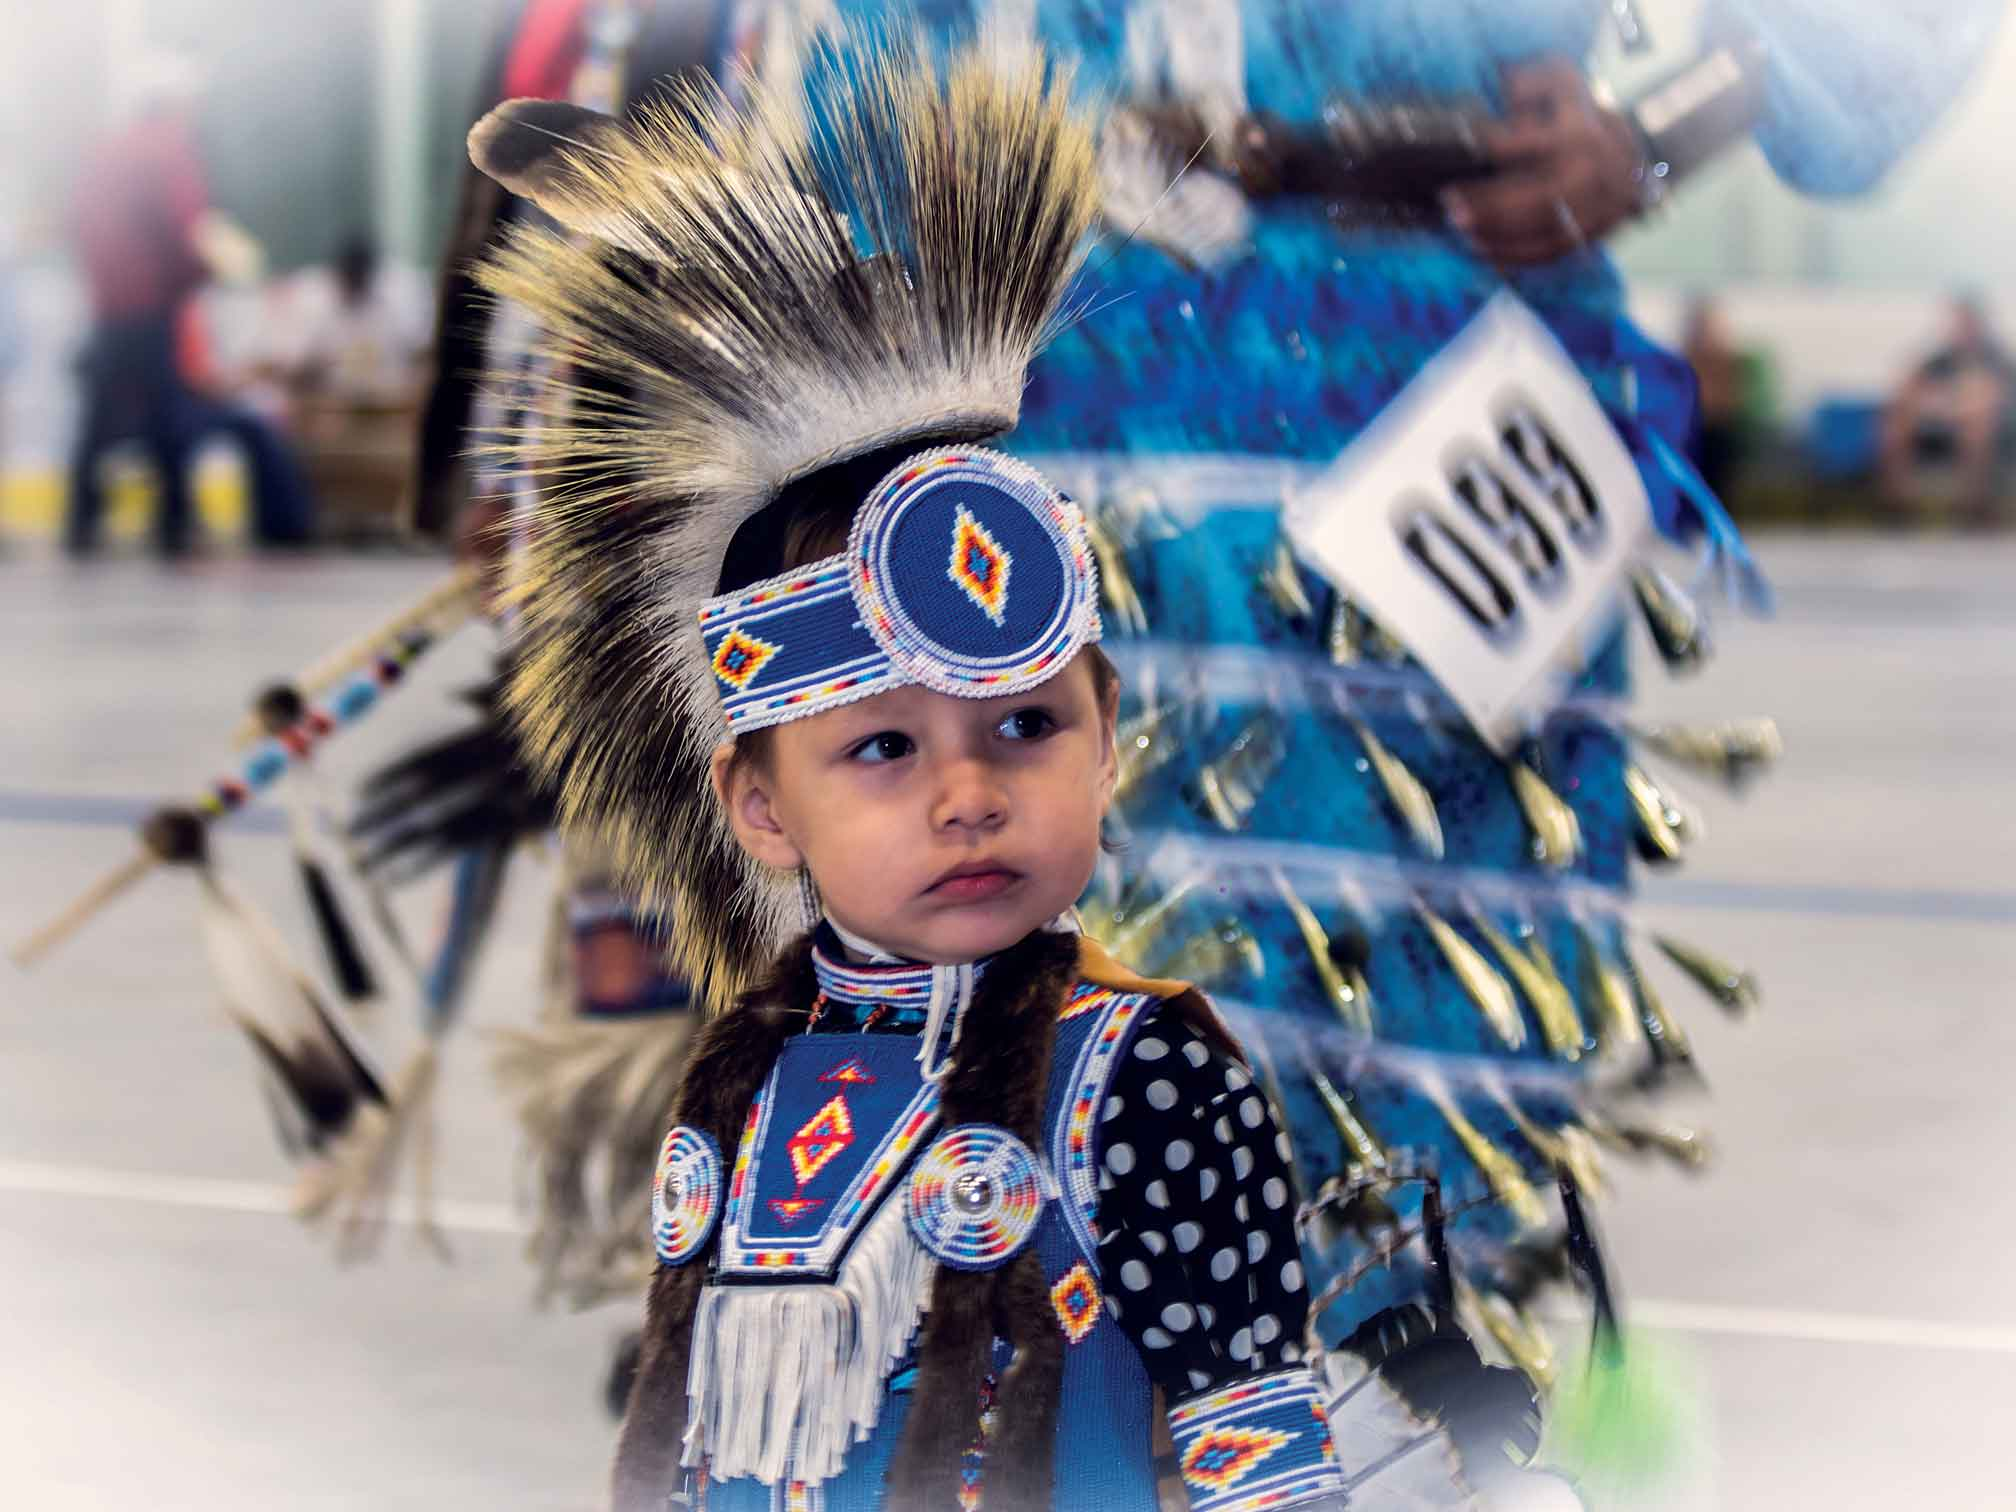 A child in traditional garb watches a powwow